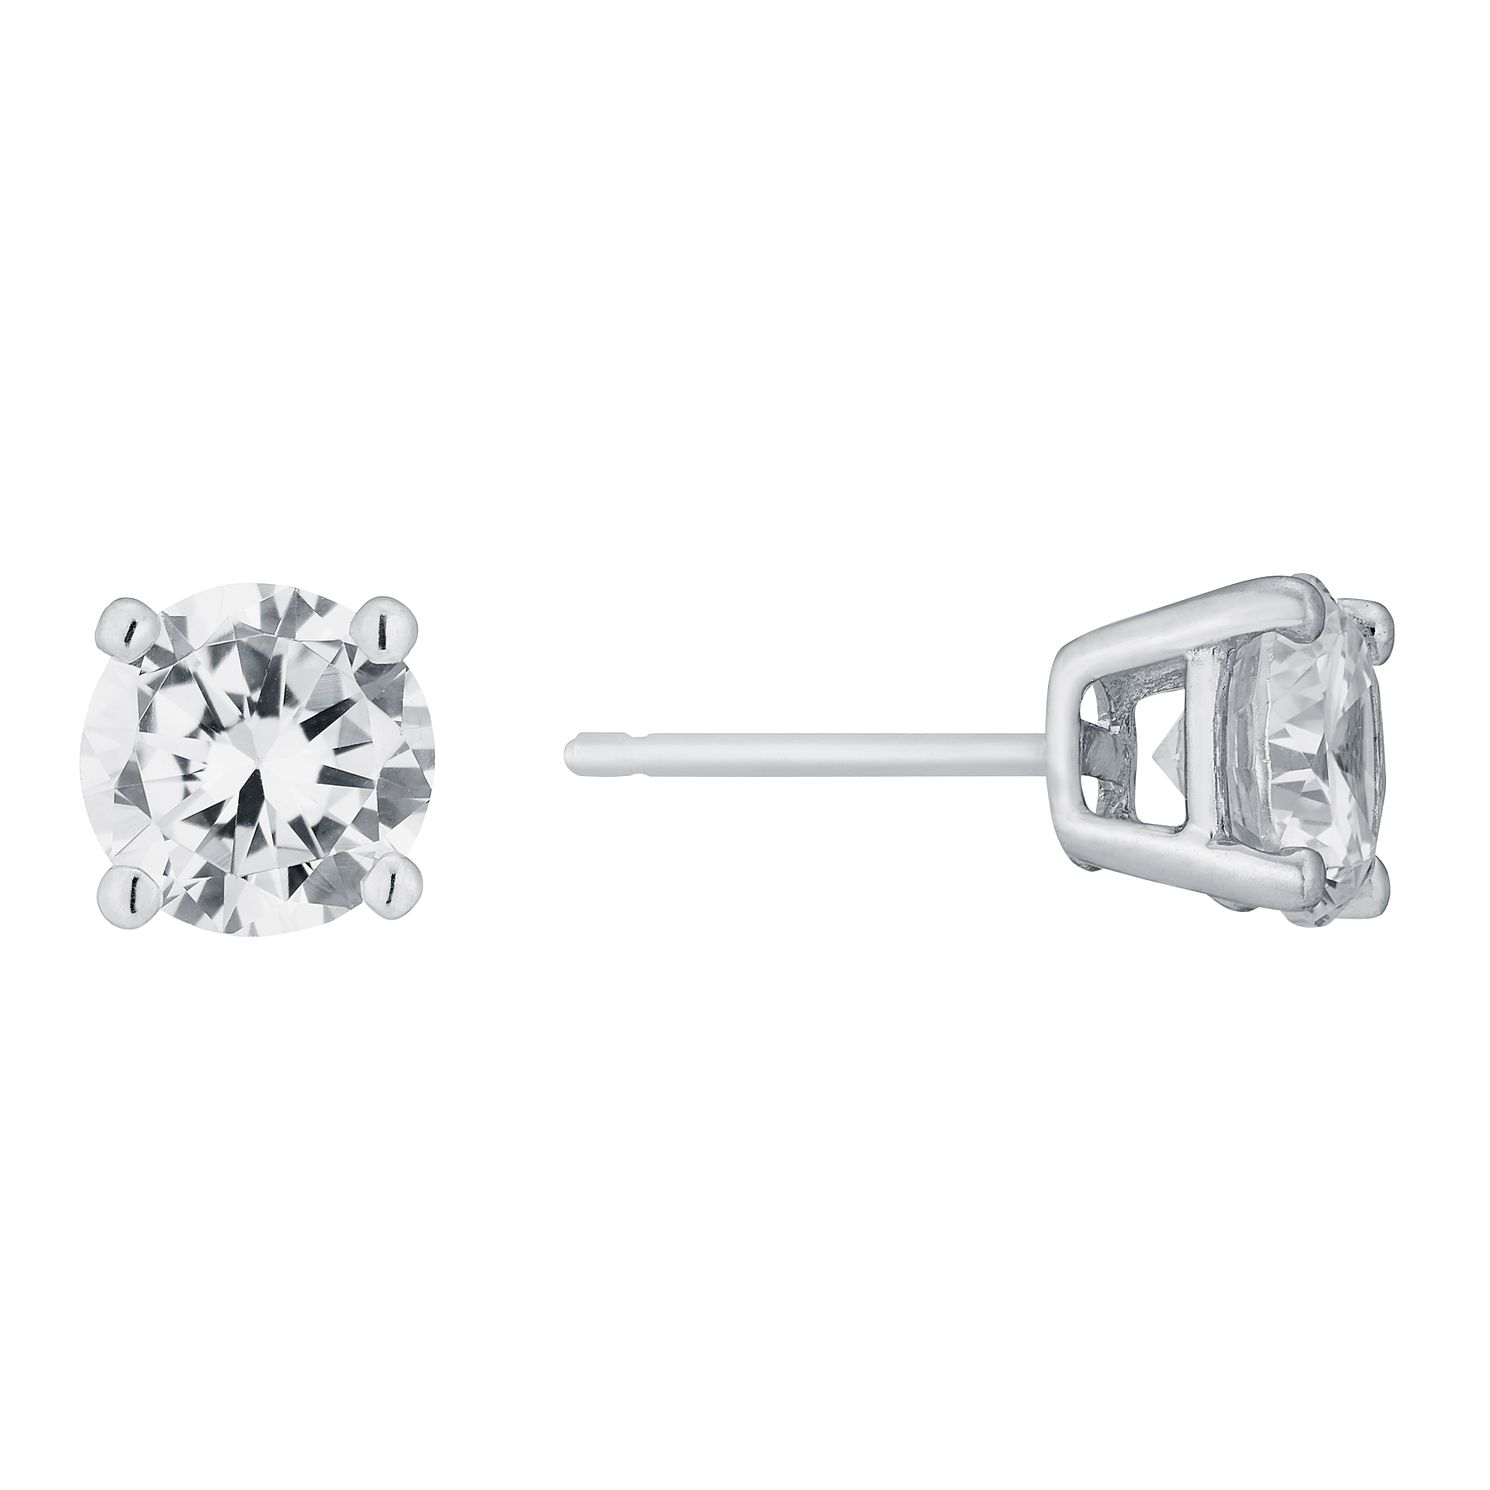 9ct White Gold Cubic Zirconia 6mm Stud Earrings - Product number 5164842